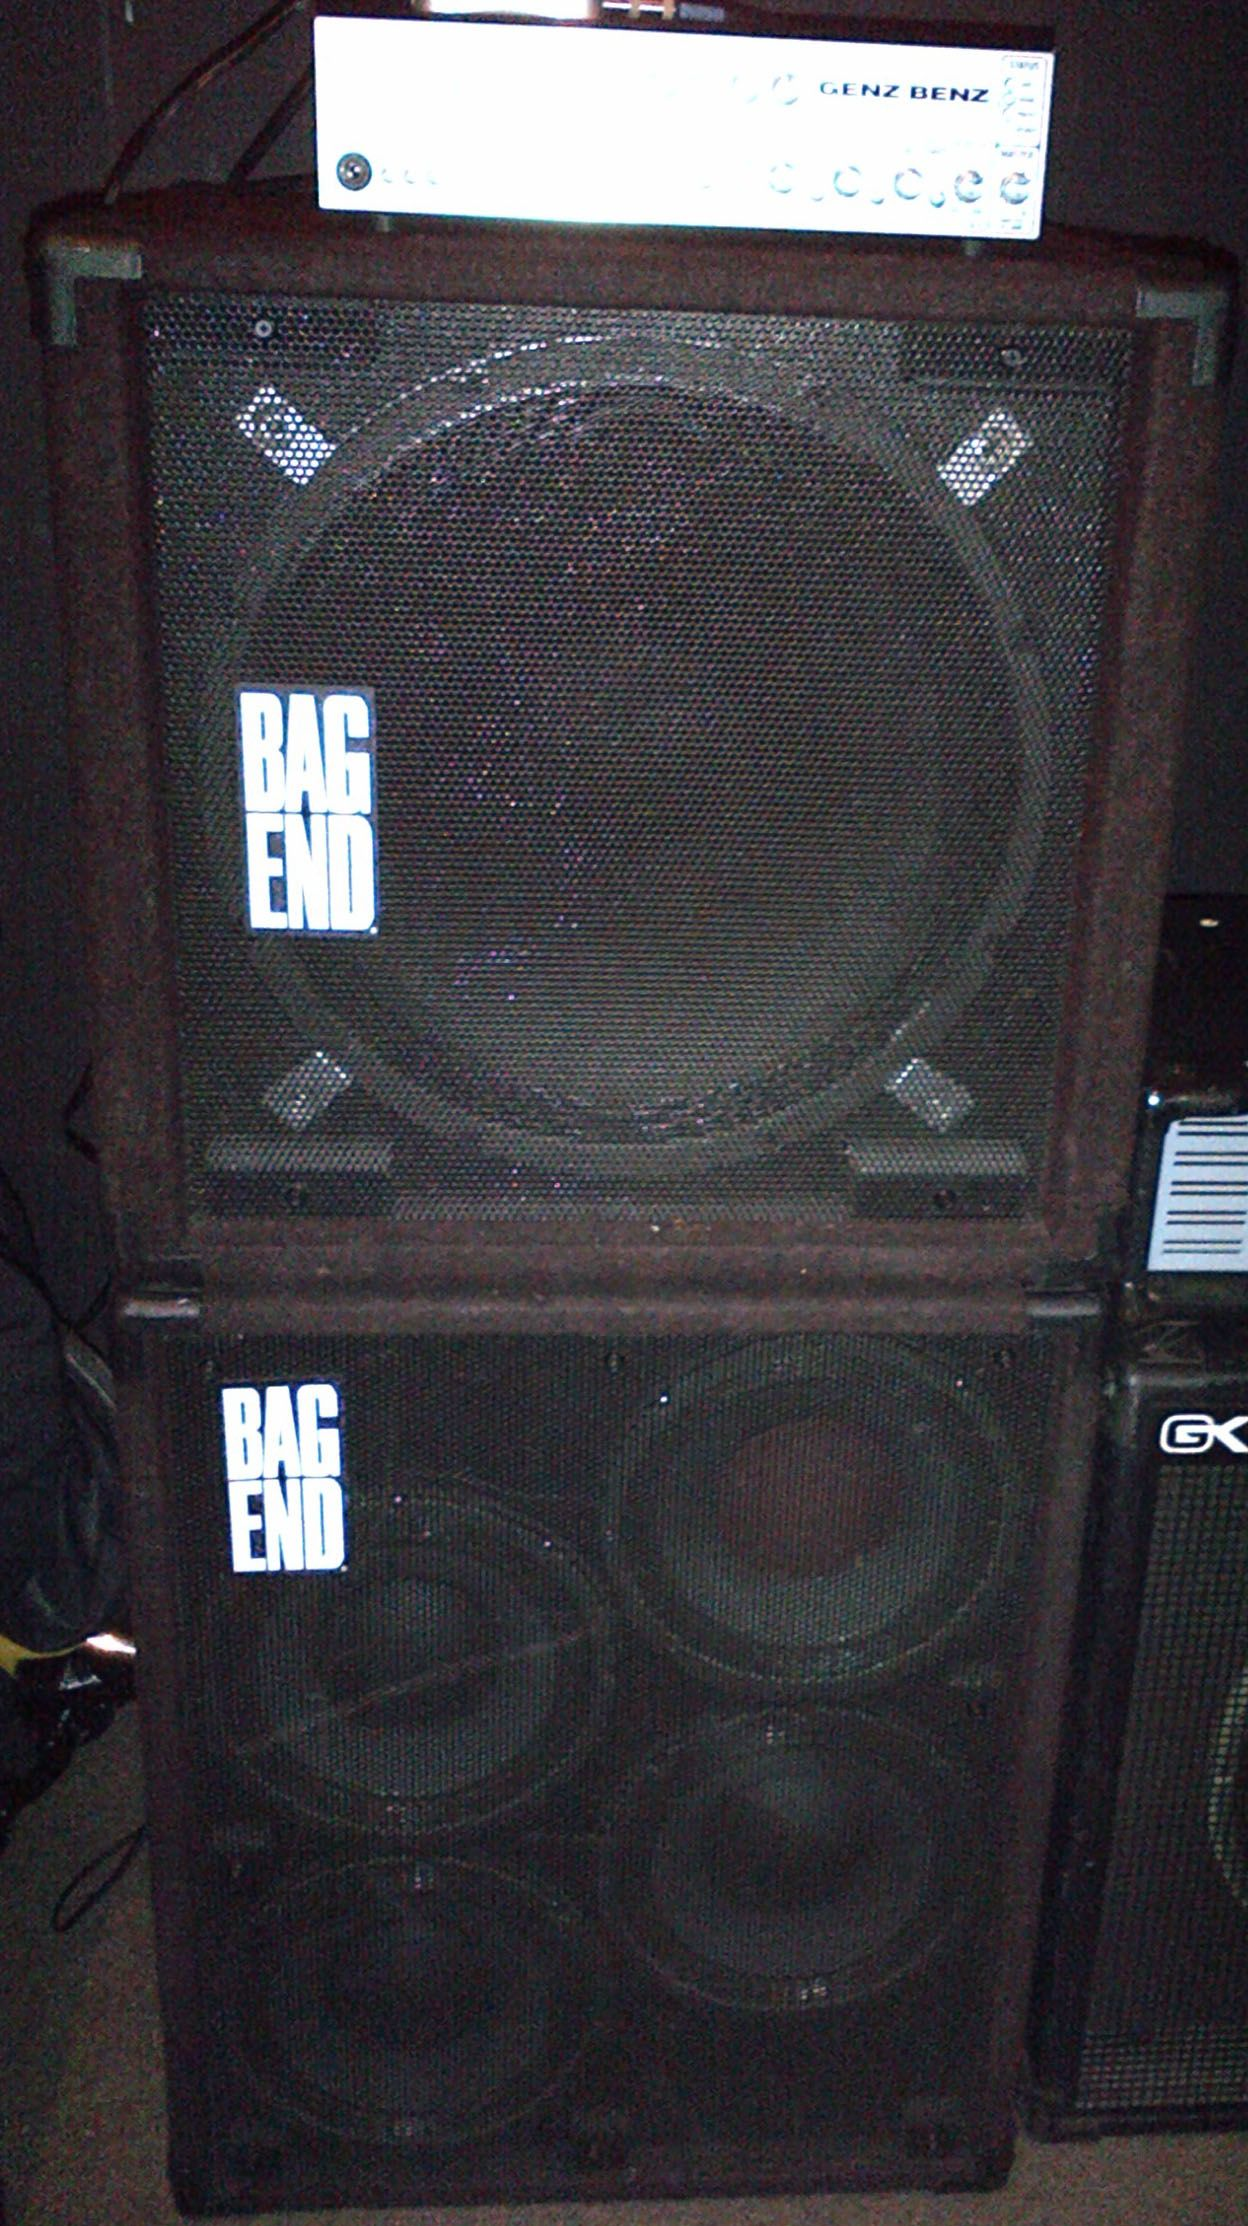 My Bag End 1x18 And 4x10 Enclosures With The Genz Benz Shuttlemax